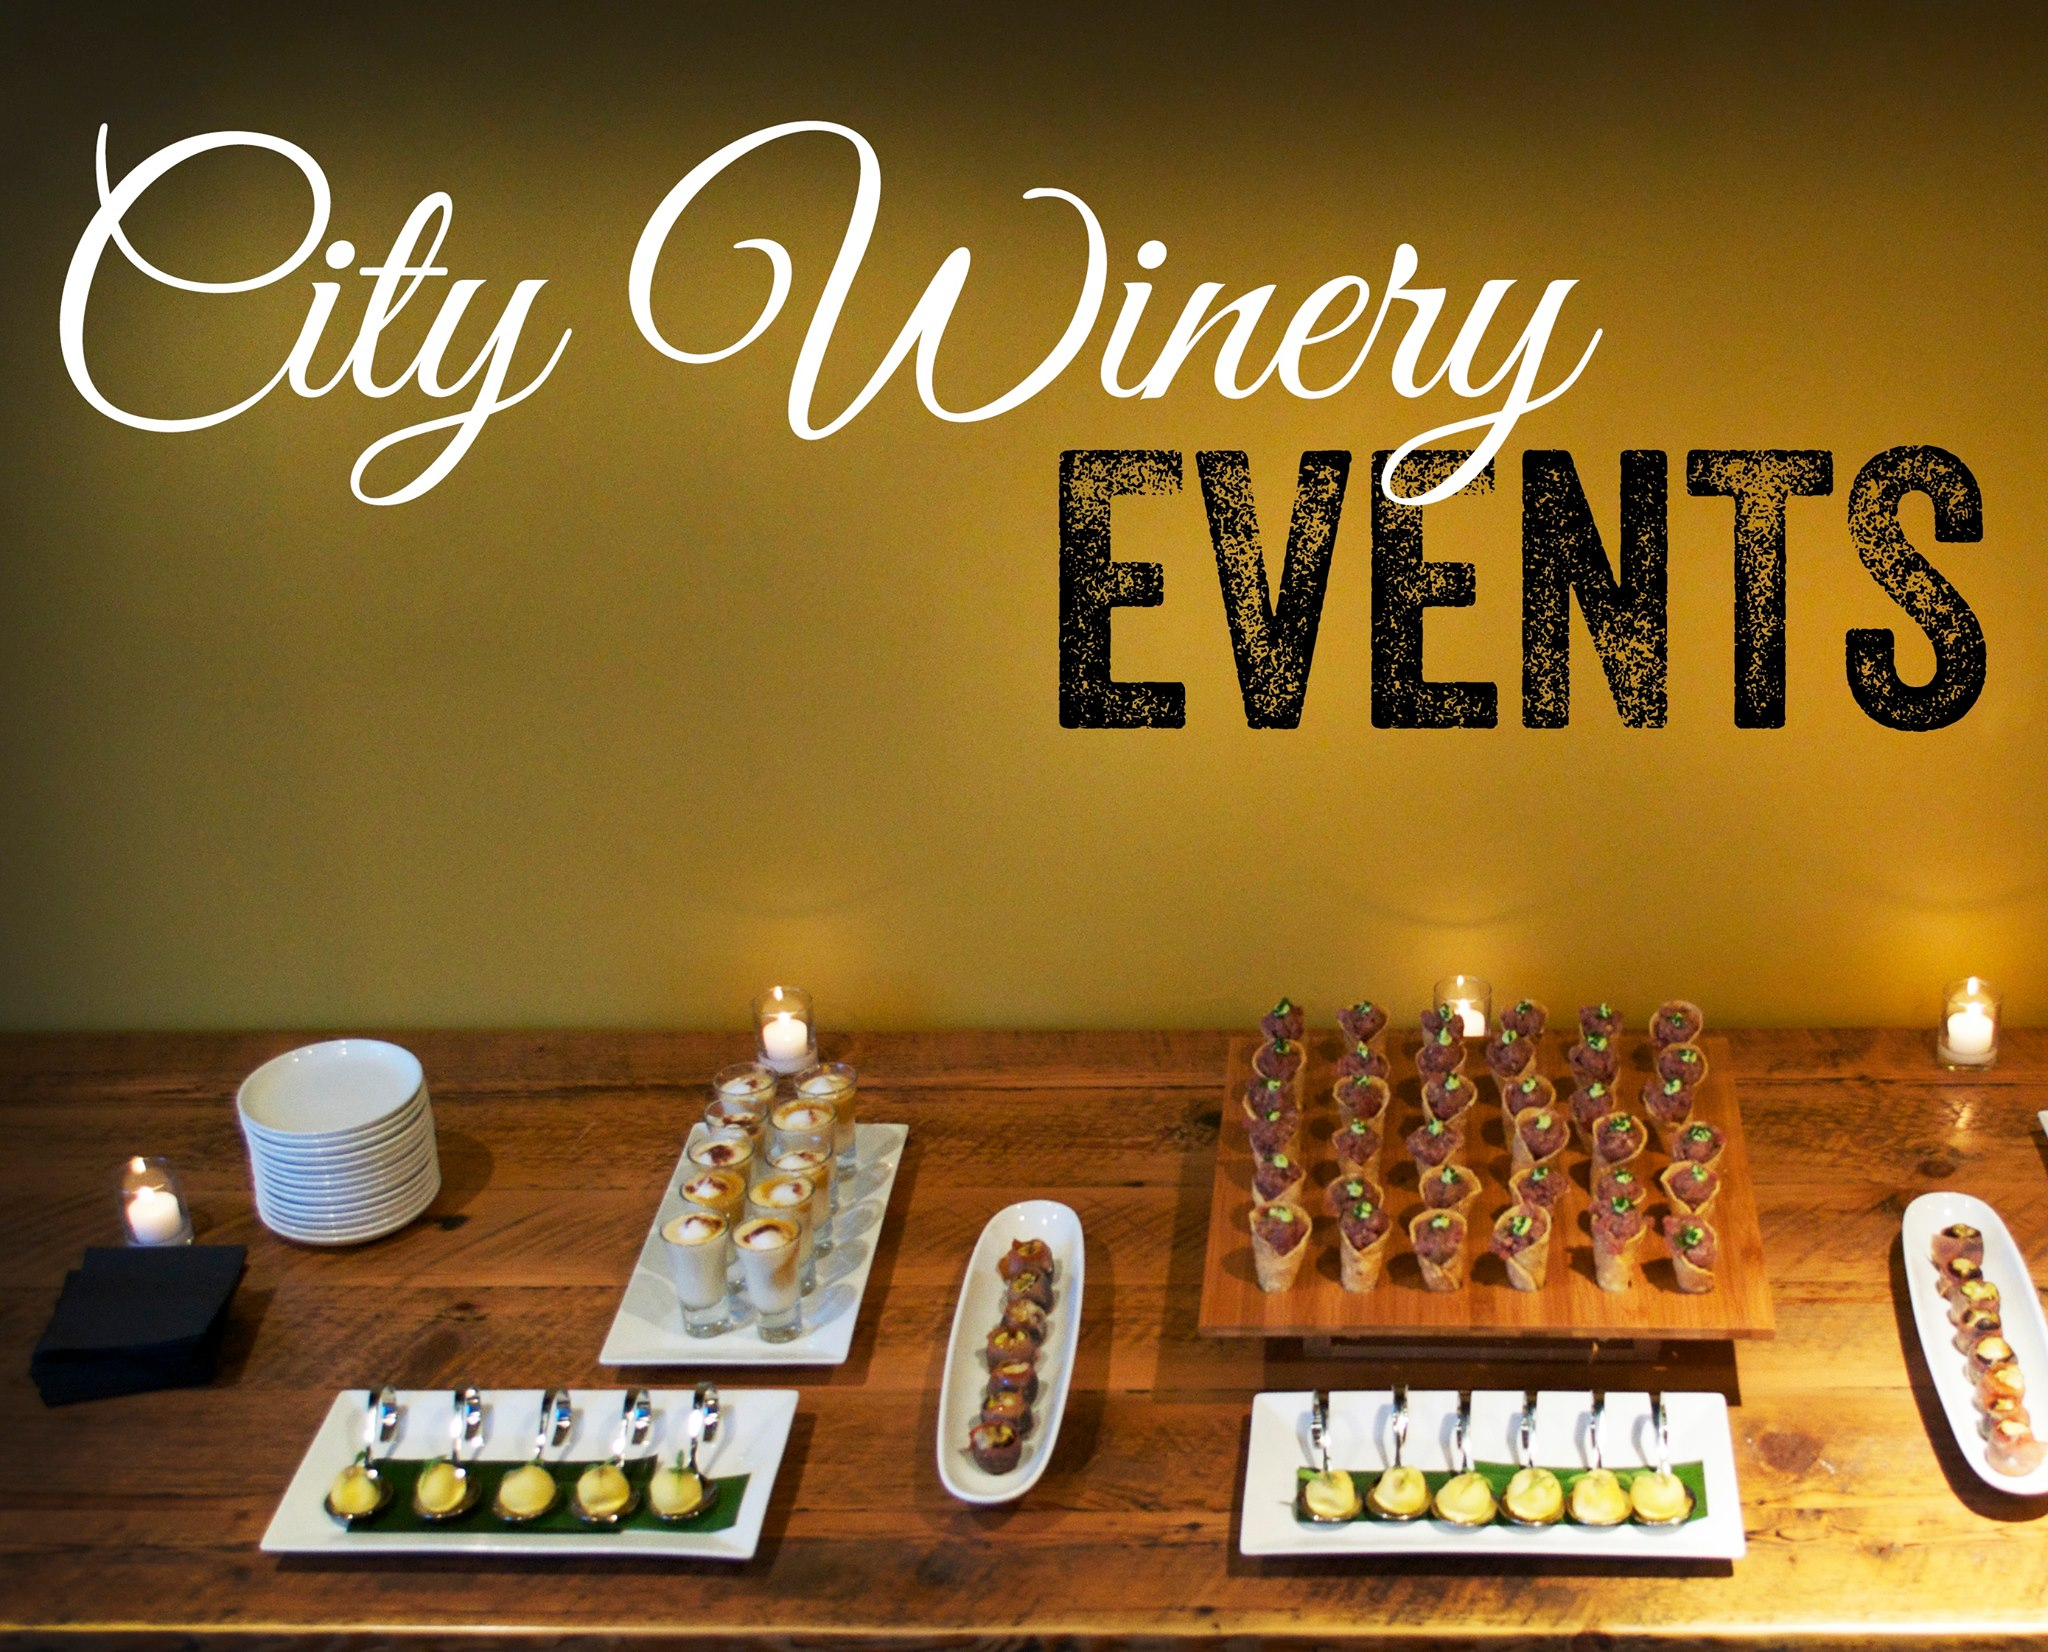 City Winery events